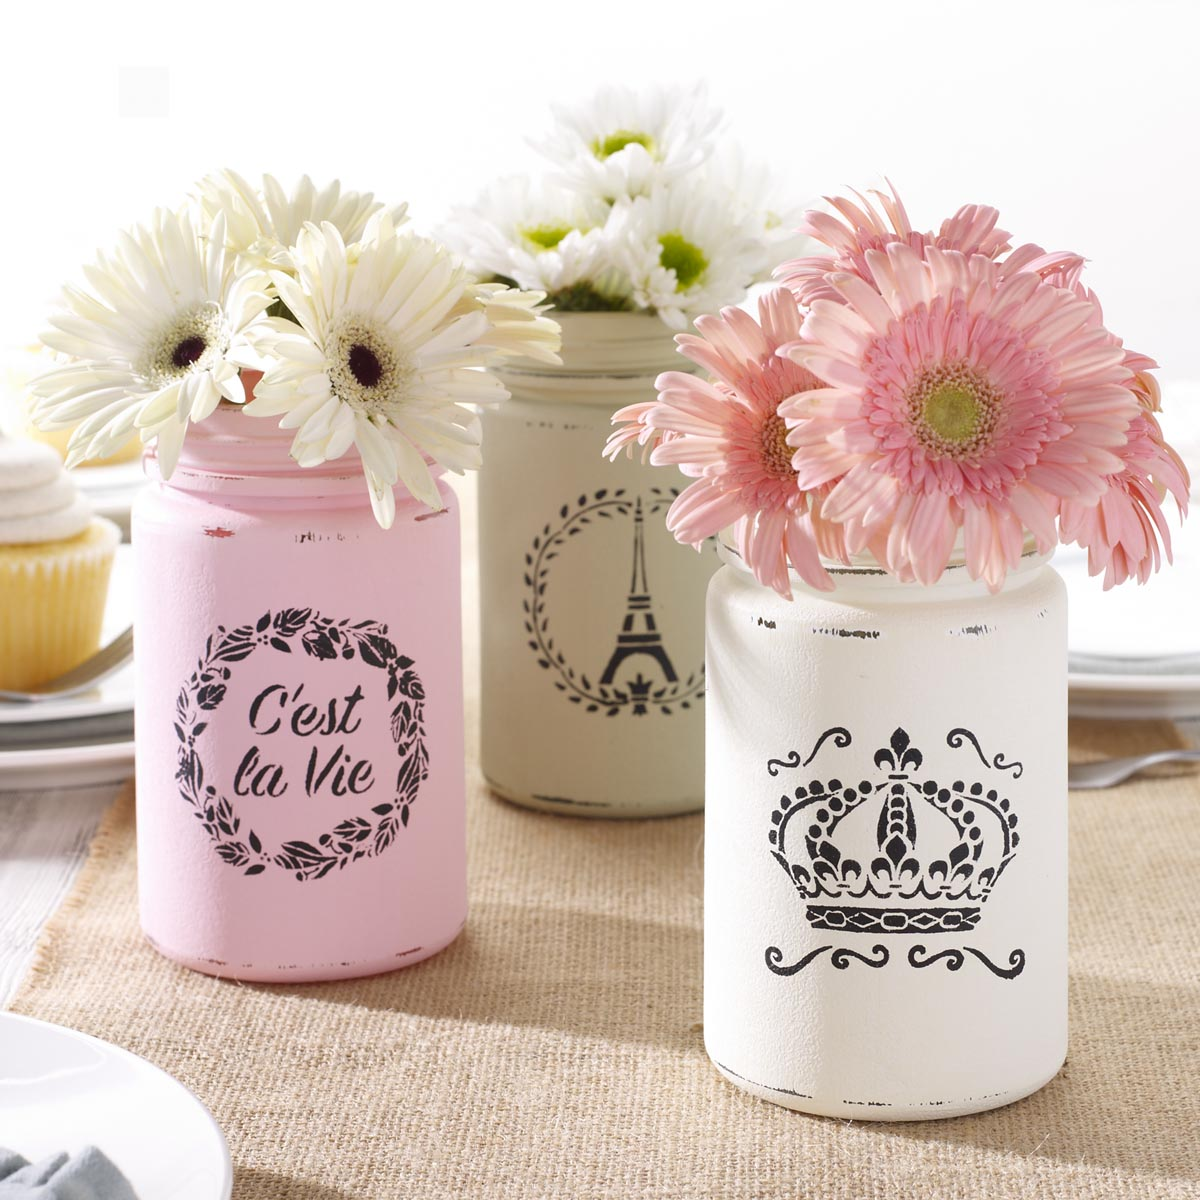 FolkArt ® Painting Stencils - Mini - French Crown